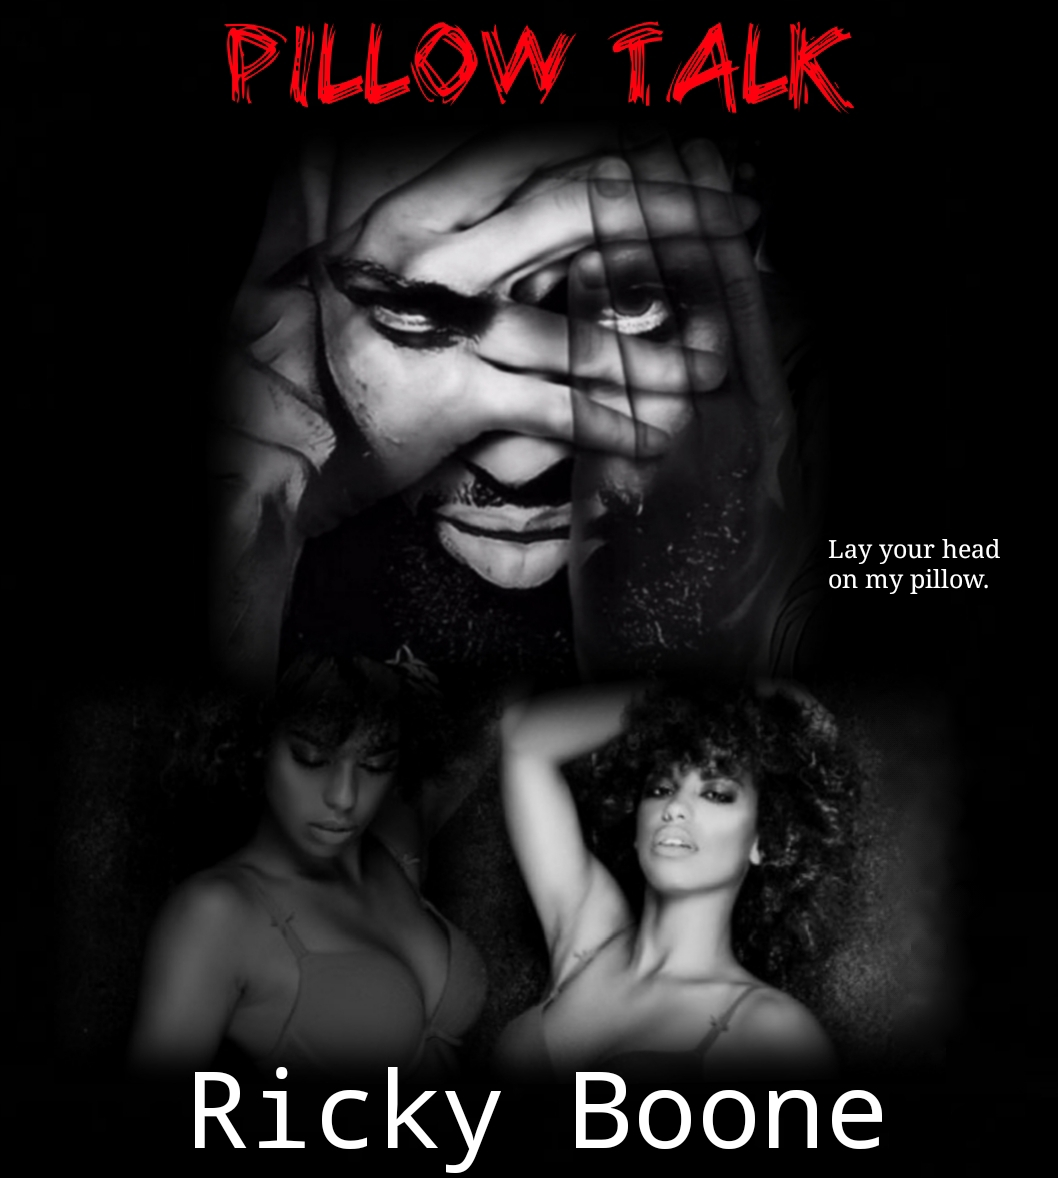 Andrea Johnson Books Publishing Releases Pillow Talk, by Author Ricky Boone, an Up Close Poetic Look Into a Black Man's Emotional View on Love and Pain